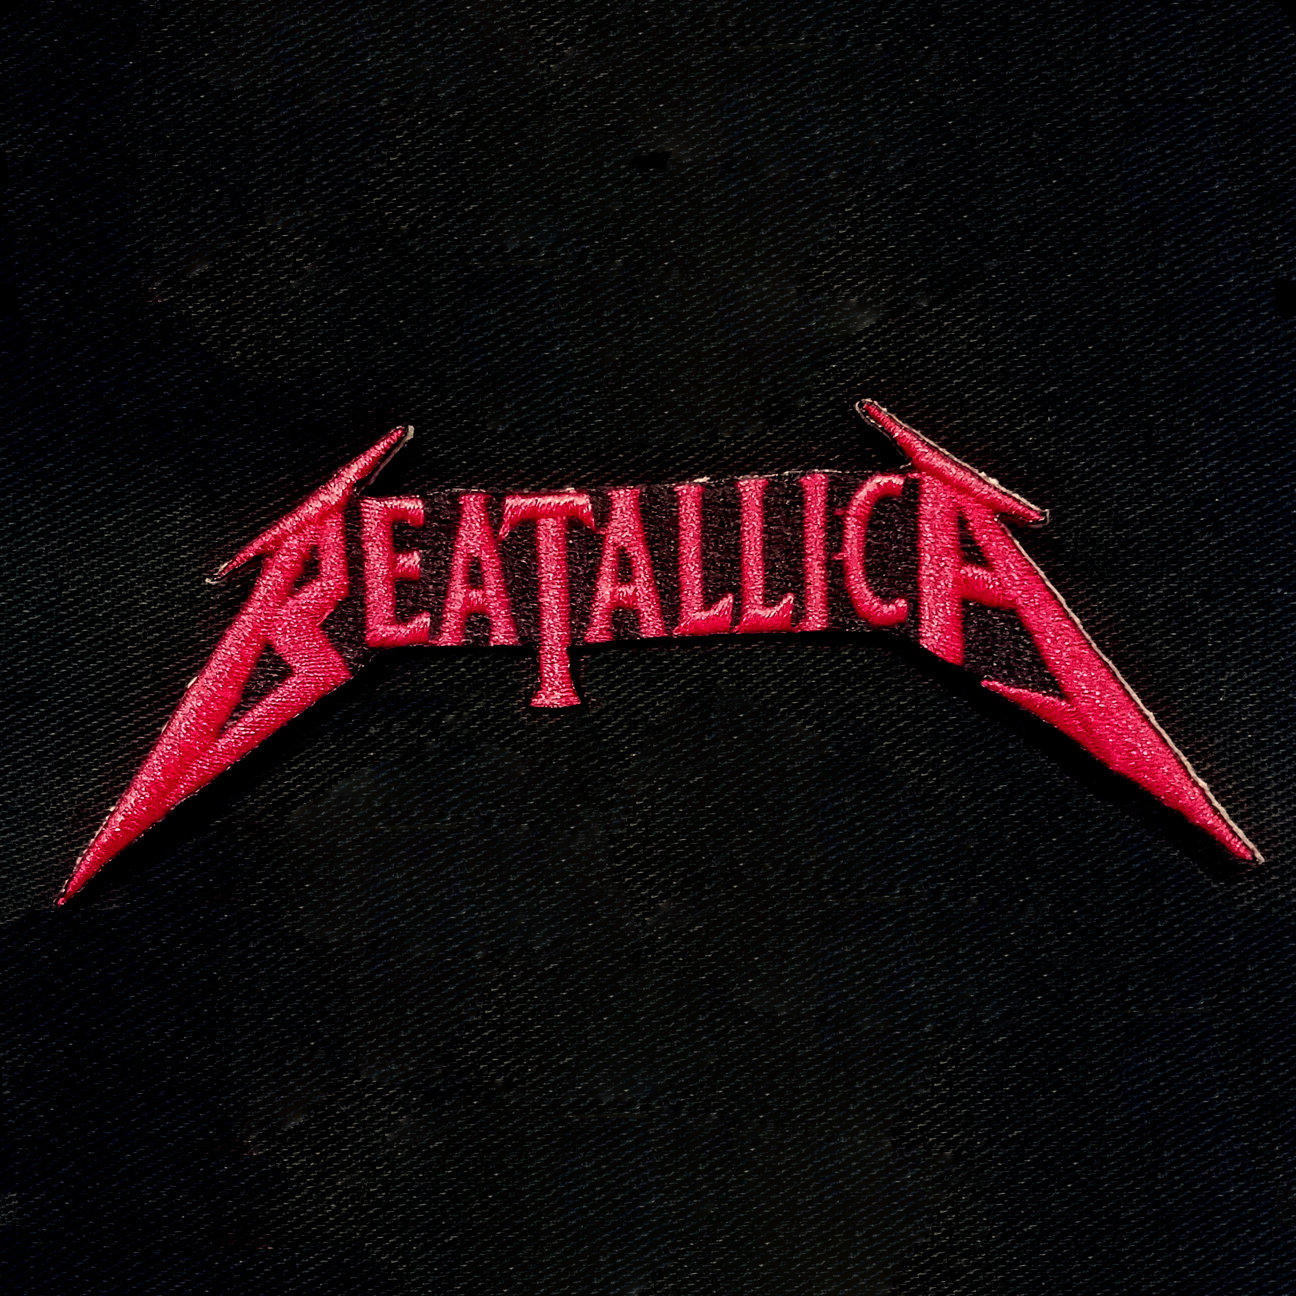 Beatallica Logo patch